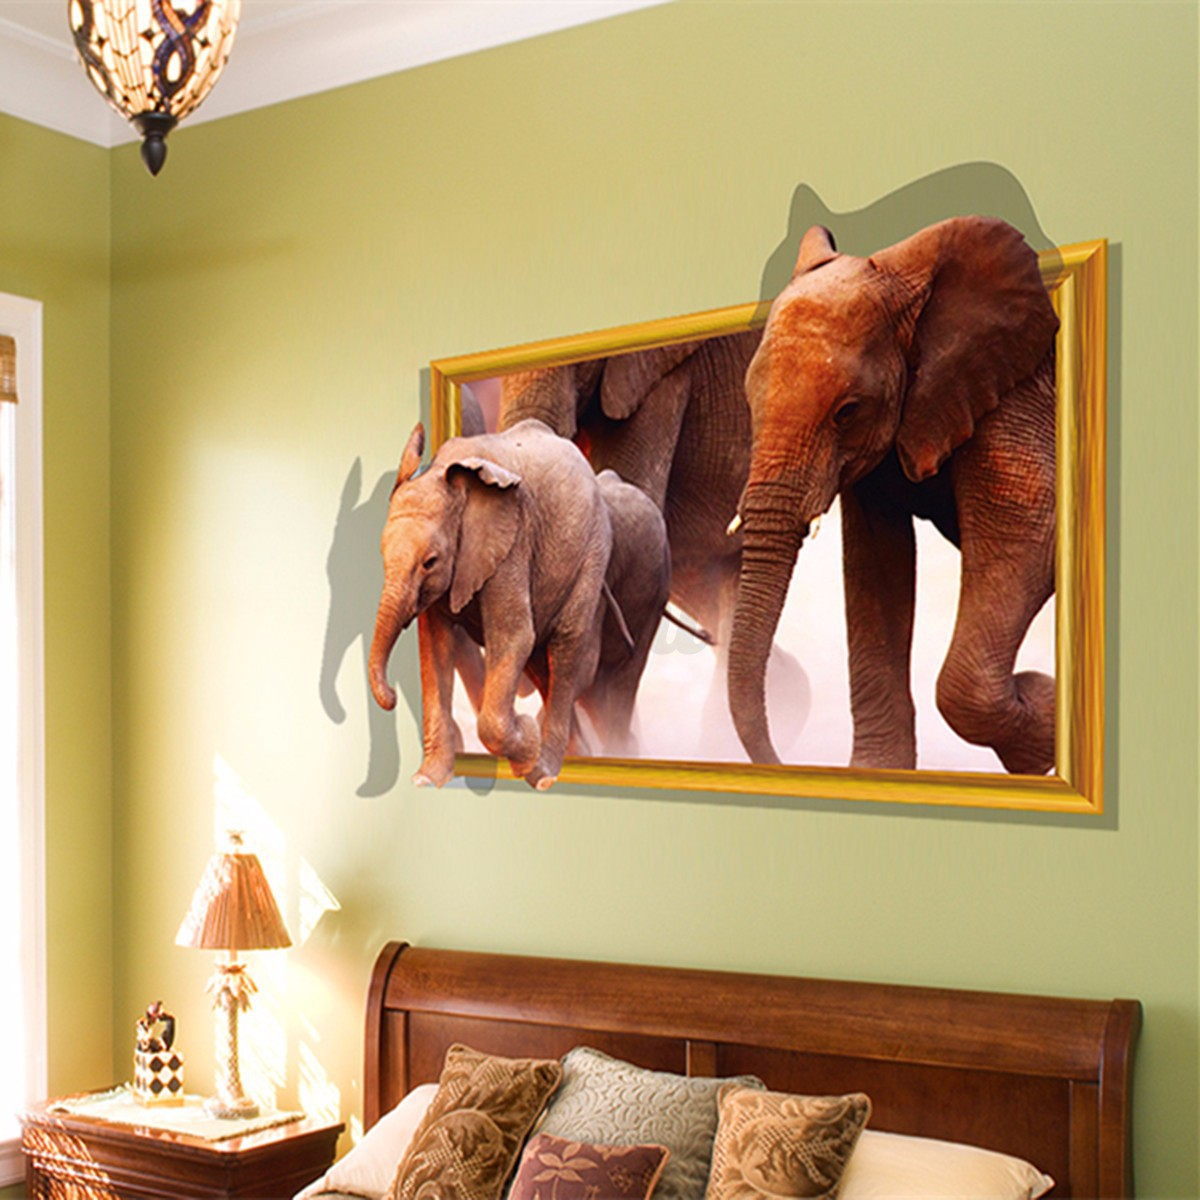 3d removable animals window view wall sticker decals mural for Animal wall mural